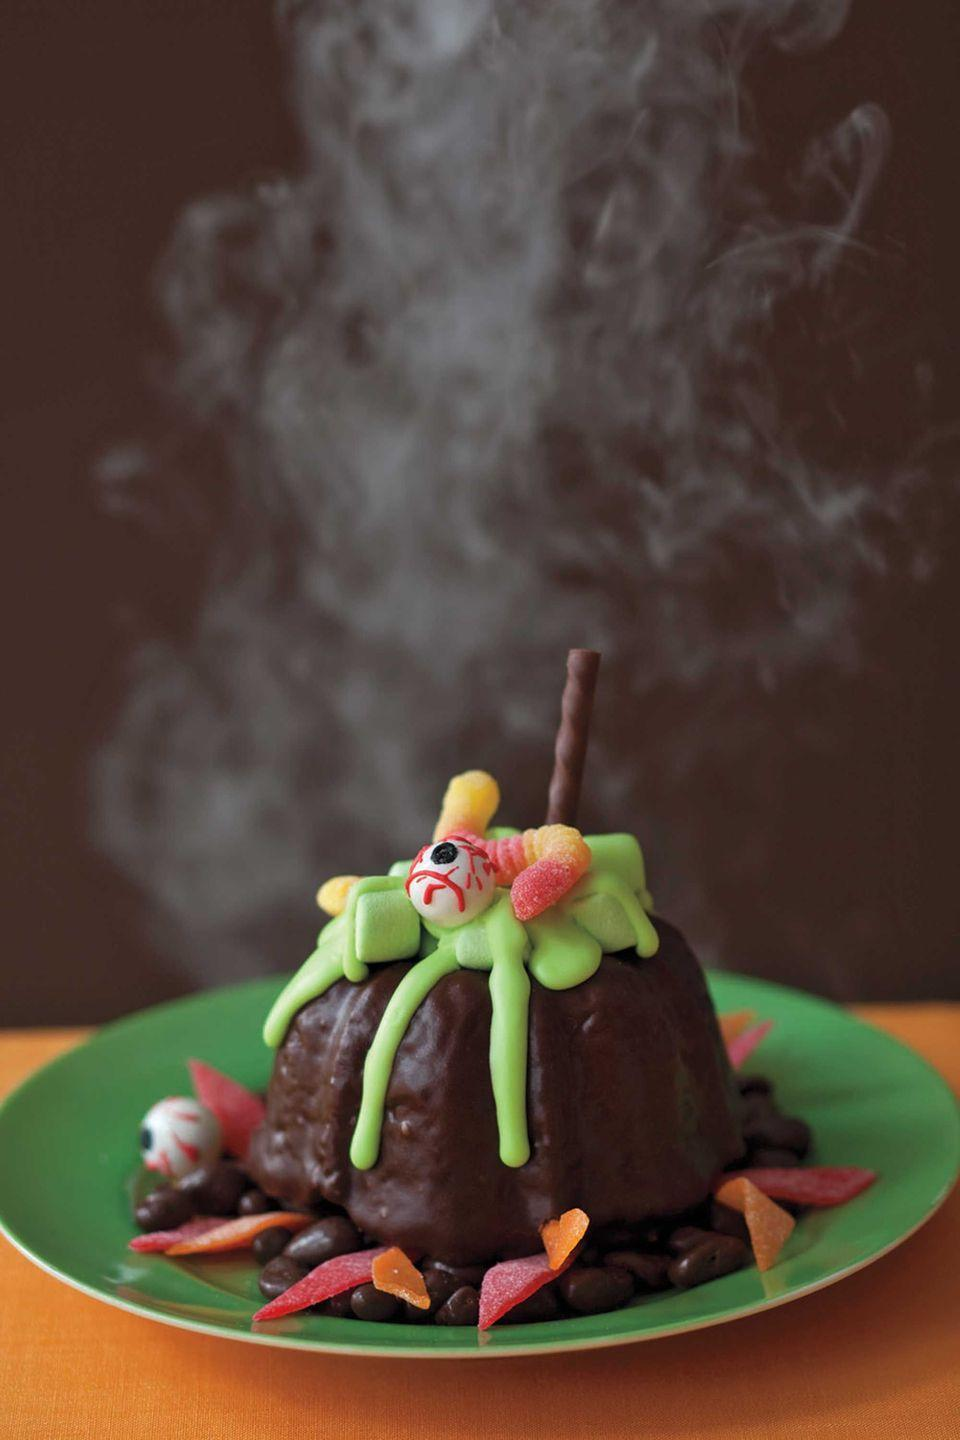 """<p>Stir up some trouble with this mini-cauldron lava cake. Oozing with green frosting, these desserts are guaranteed to scare — and satisfy.</p><p><strong><em><a href=""""https://www.womansday.com/food-recipes/food-drinks/recipes/a11039/mini-cauldrons-recipe-122469/"""" rel=""""nofollow noopener"""" target=""""_blank"""" data-ylk=""""slk:Get the Mini-Cauldrons recipe."""" class=""""link rapid-noclick-resp"""">Get the Mini-Cauldrons recipe. </a></em></strong> </p>"""